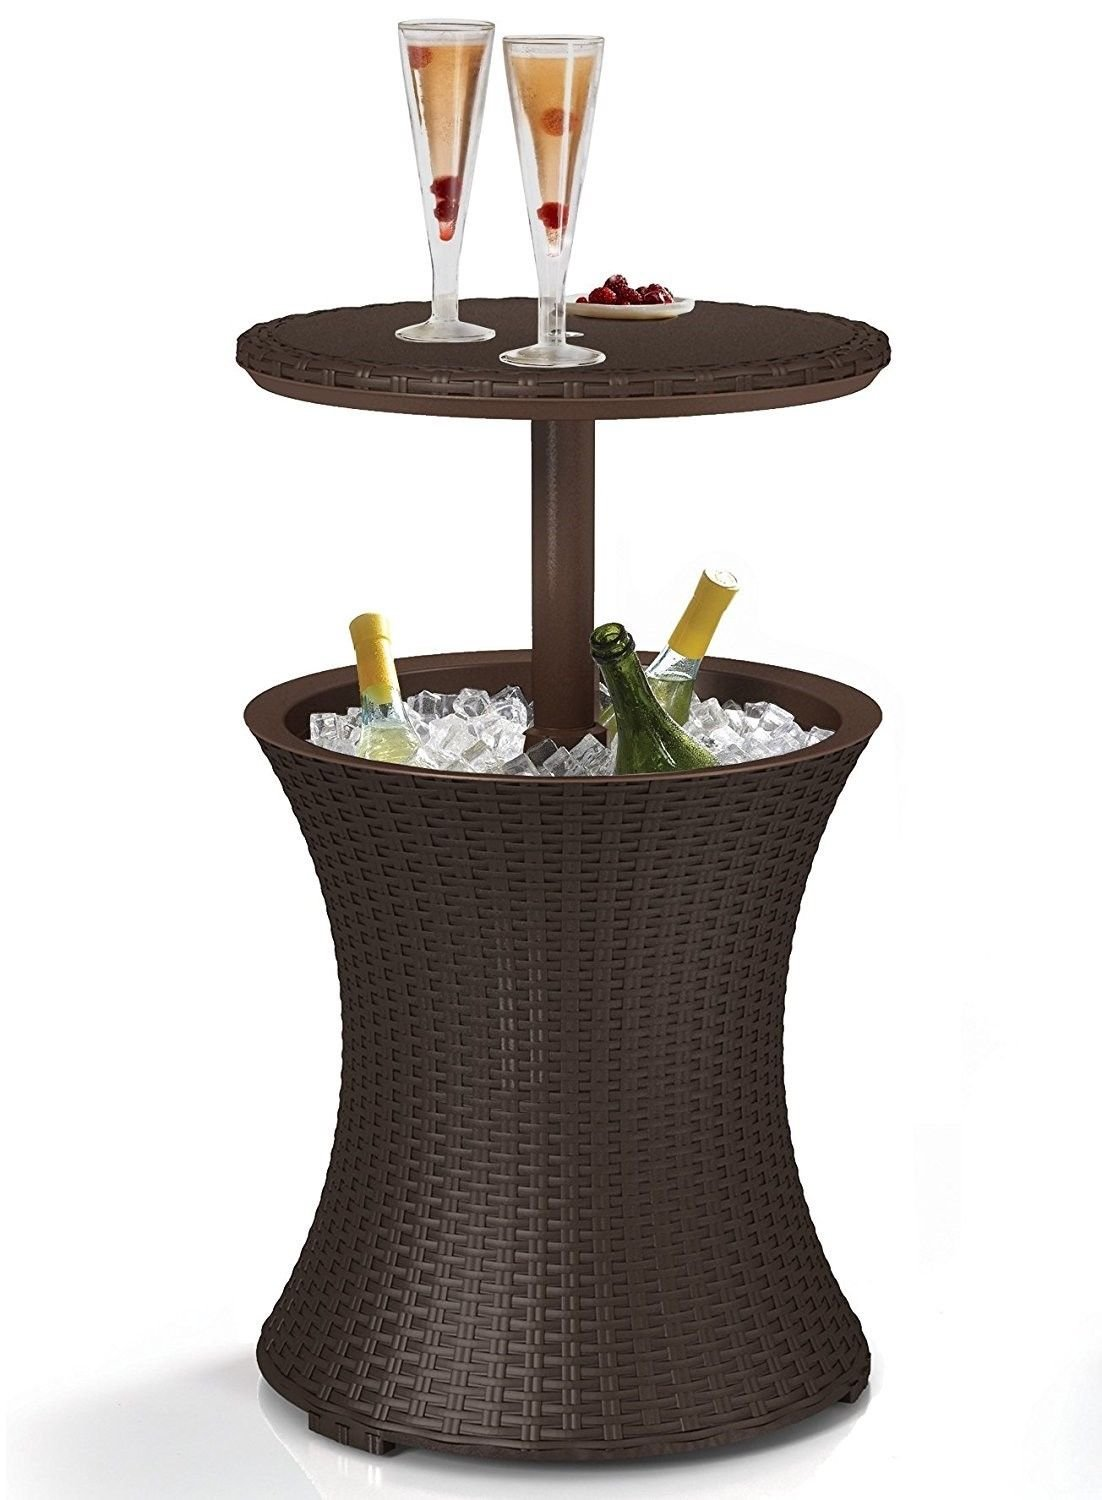 All Goodly 3-in-1 Cocktail Table, Cooler, Coffee Table 7.5-Gal Cool Bar Rattan Style Outdoor Patio Cooler Table, Brown